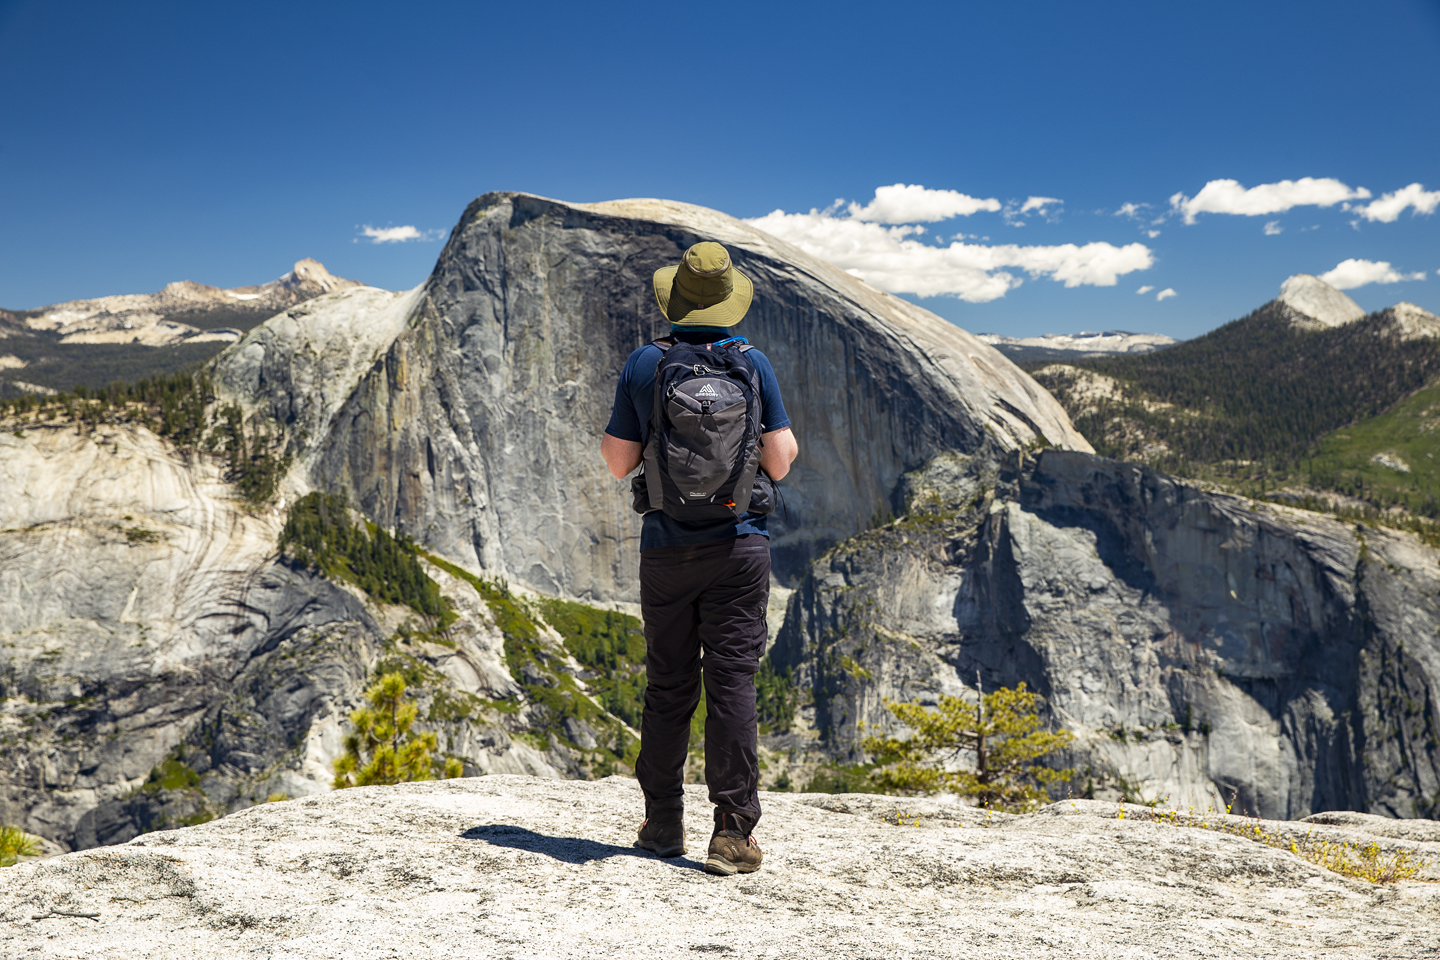 North Dome Yosemite